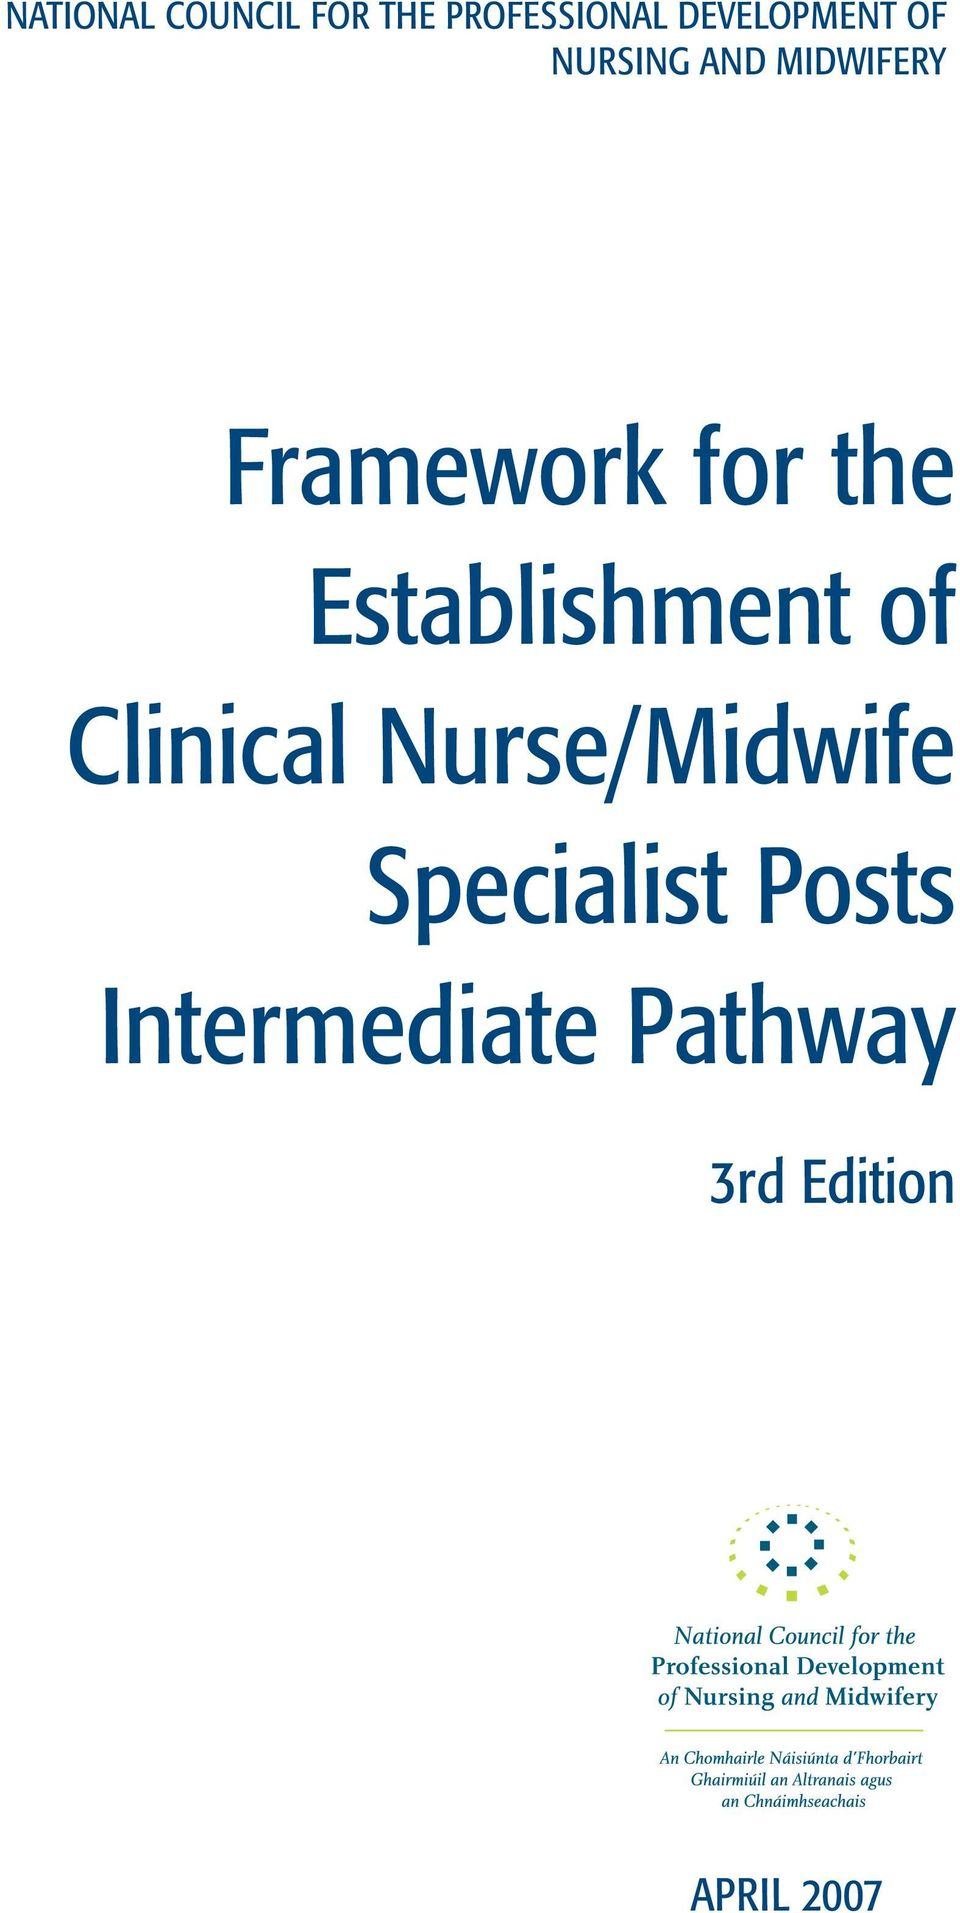 for the Establishment of Clinical Nurse/Midwife